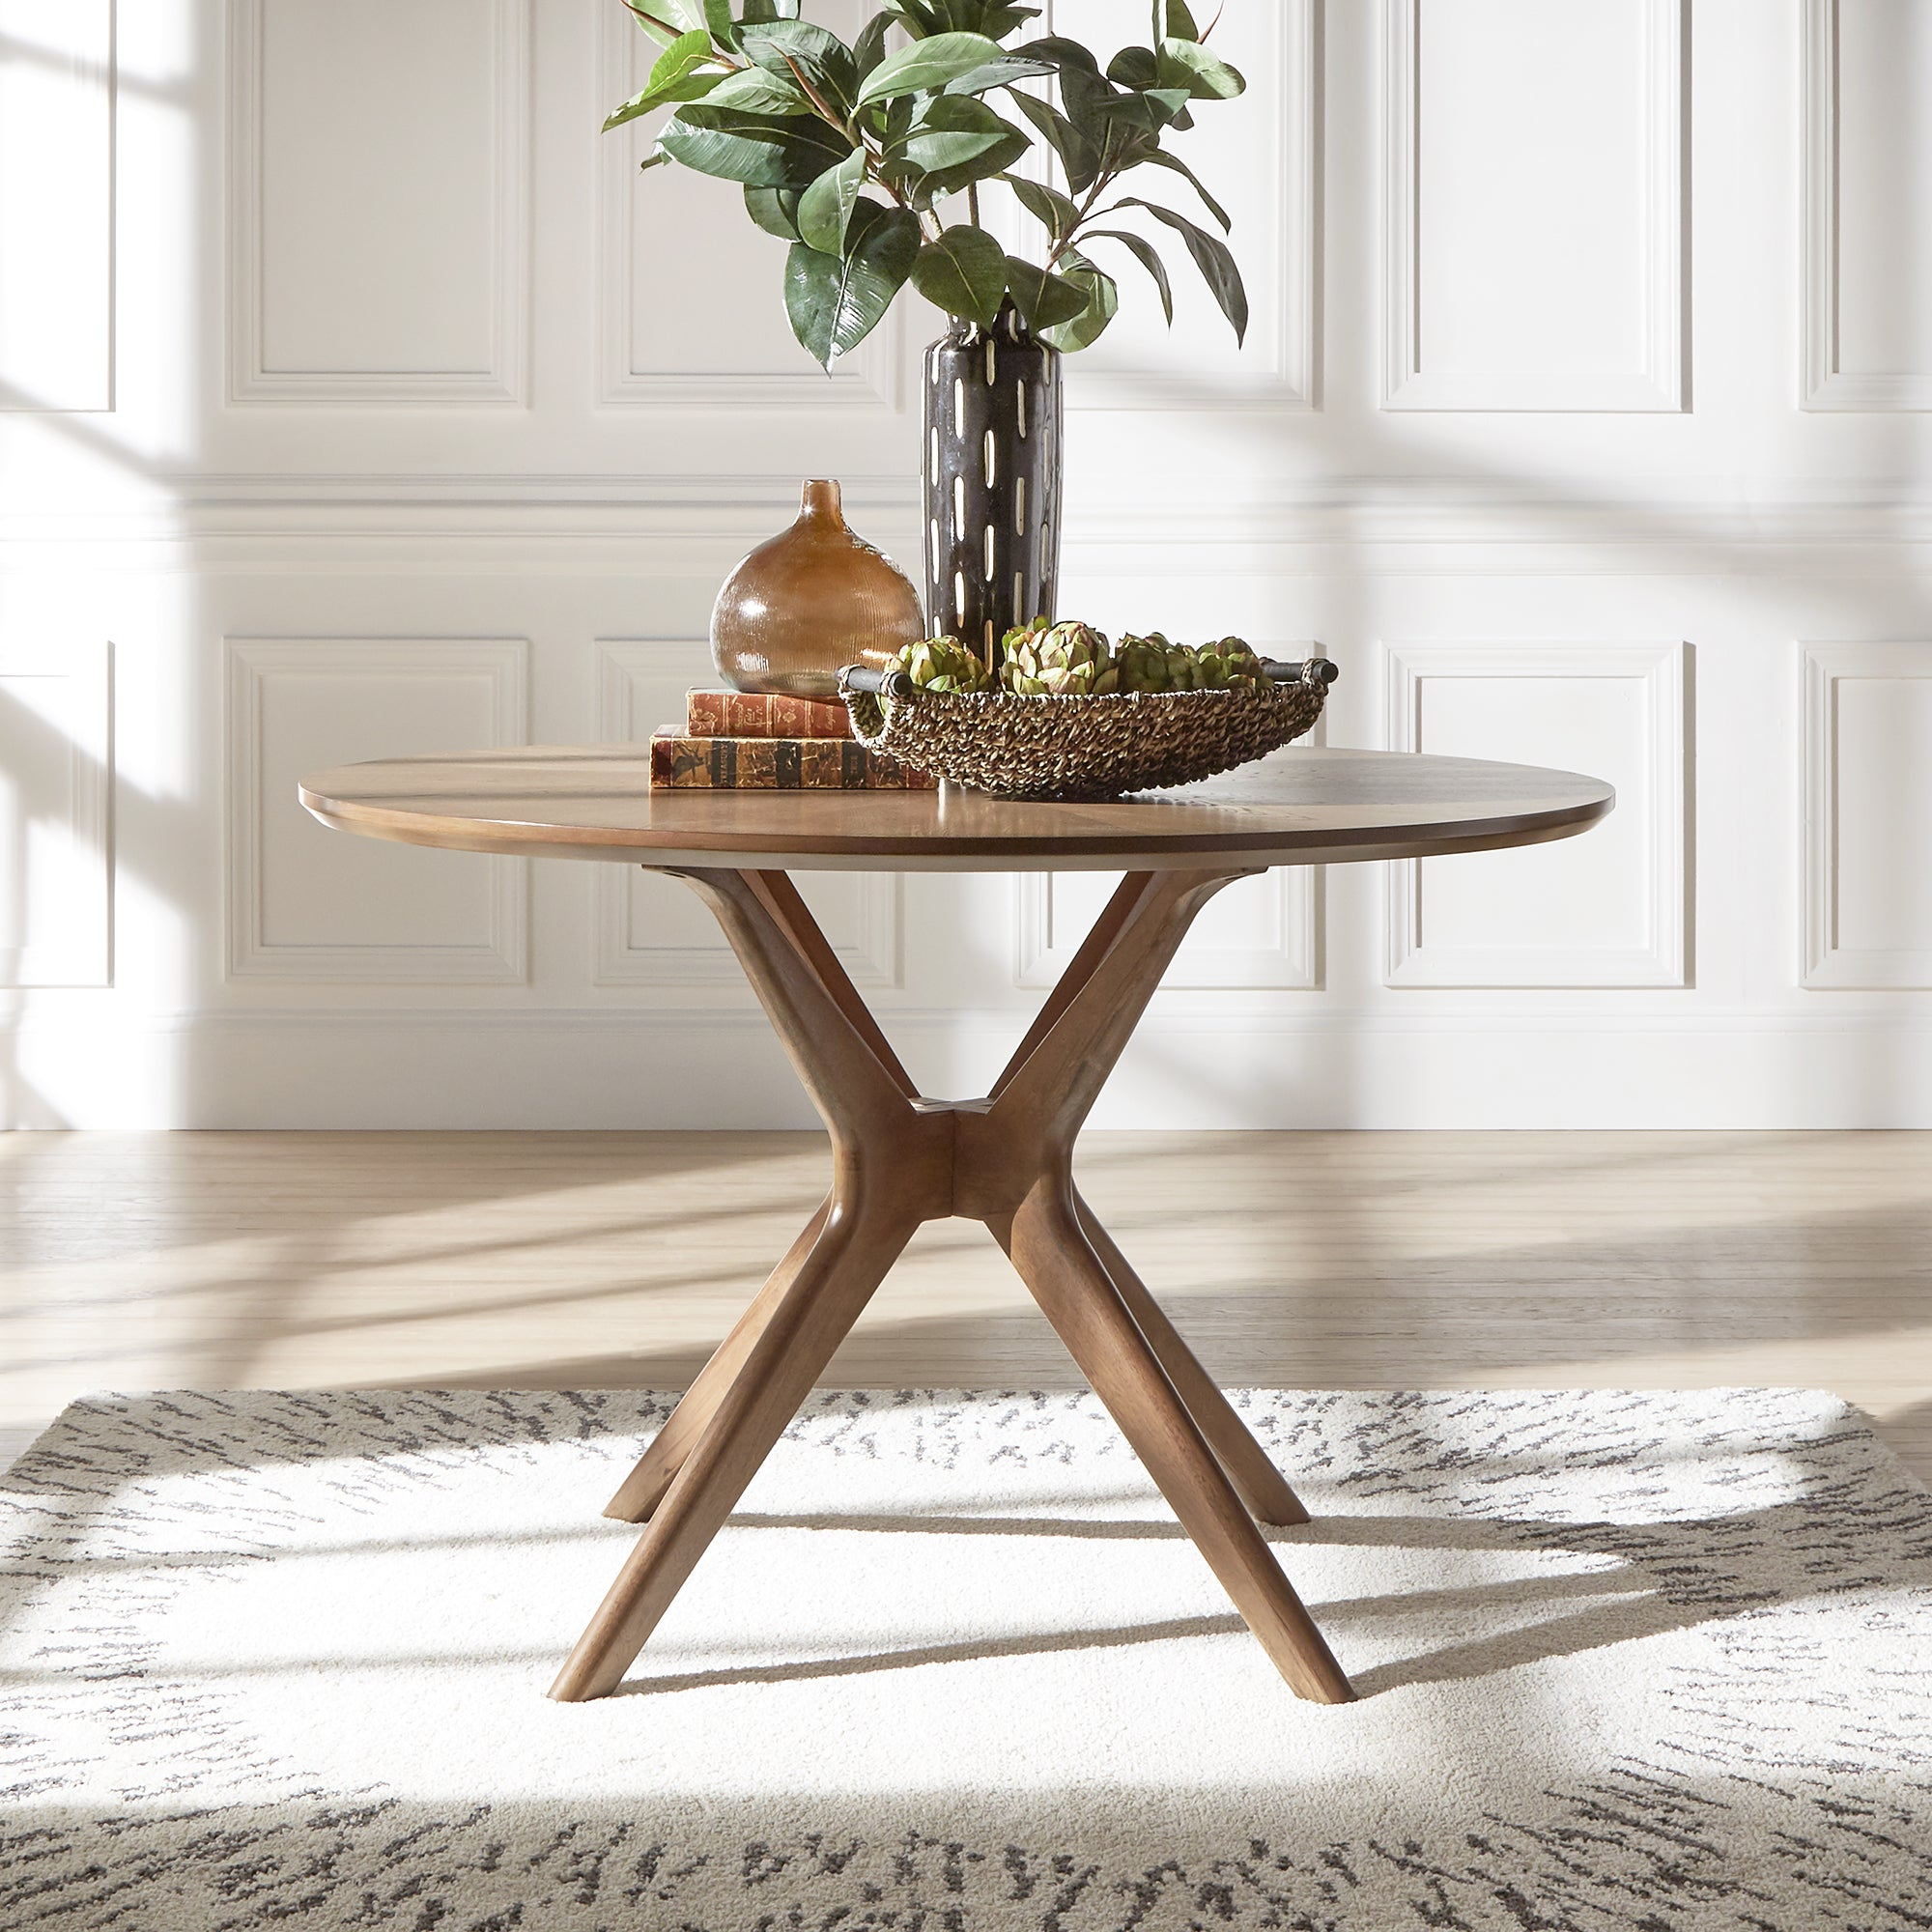 Nadine Mid-Century Walnut Finish Round Dining Table by iNSPIRE Q Modern -  Free Shipping Today - Overstock.com - 24248826